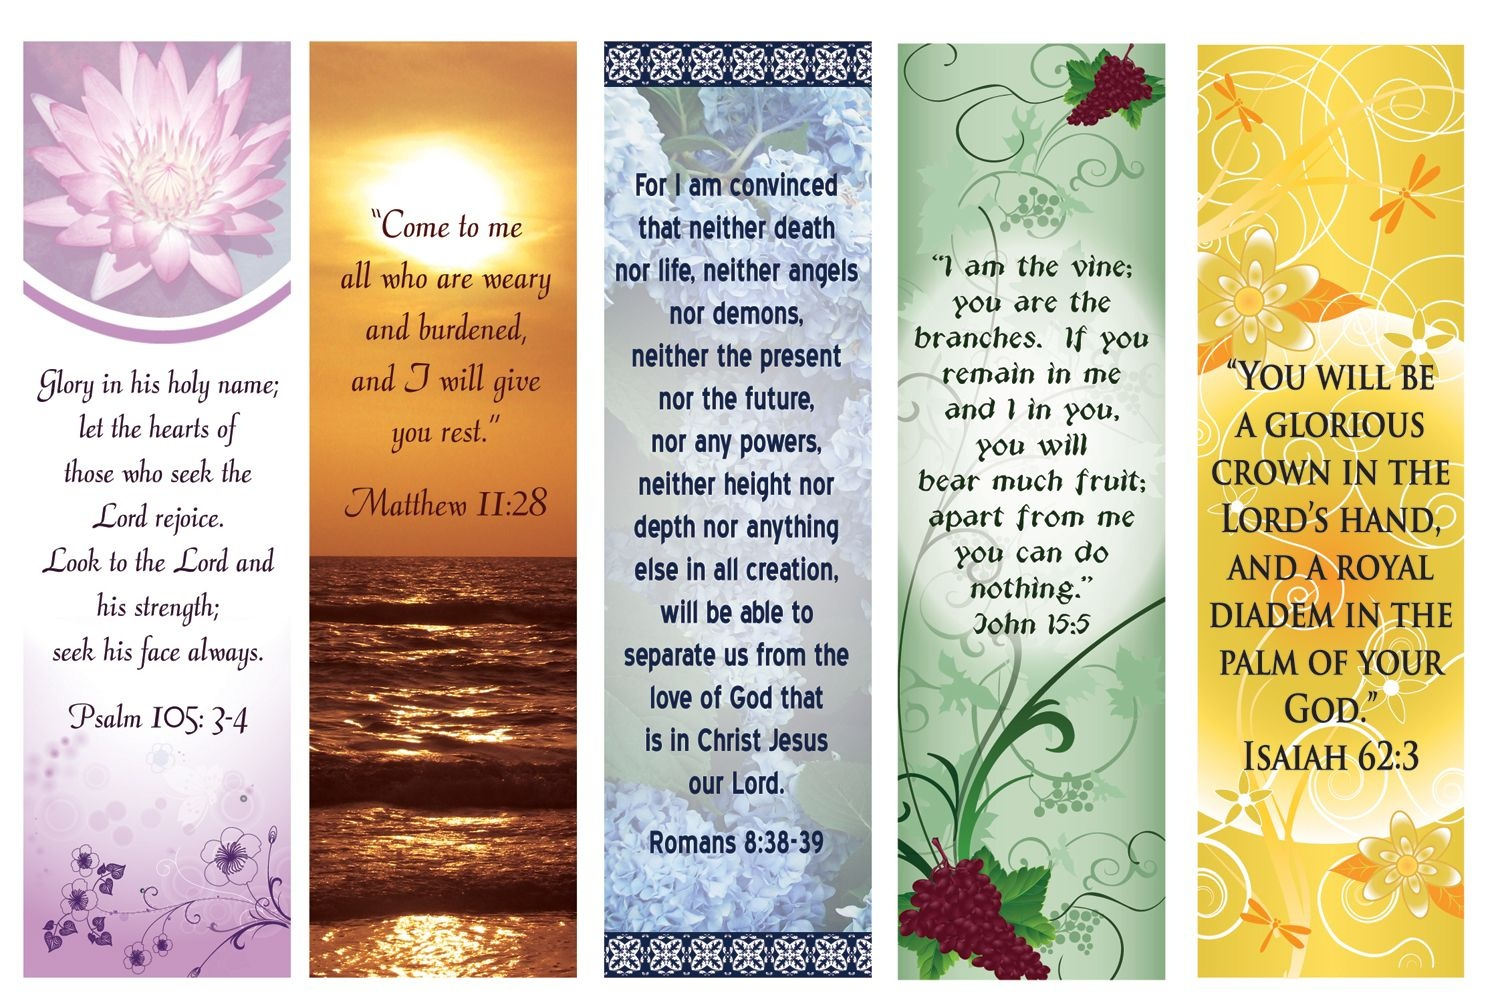 Free Printable Bookmarks With Bible Verses   Bookmarks   Printable - Free Printable Bookmarks With Bible Verses